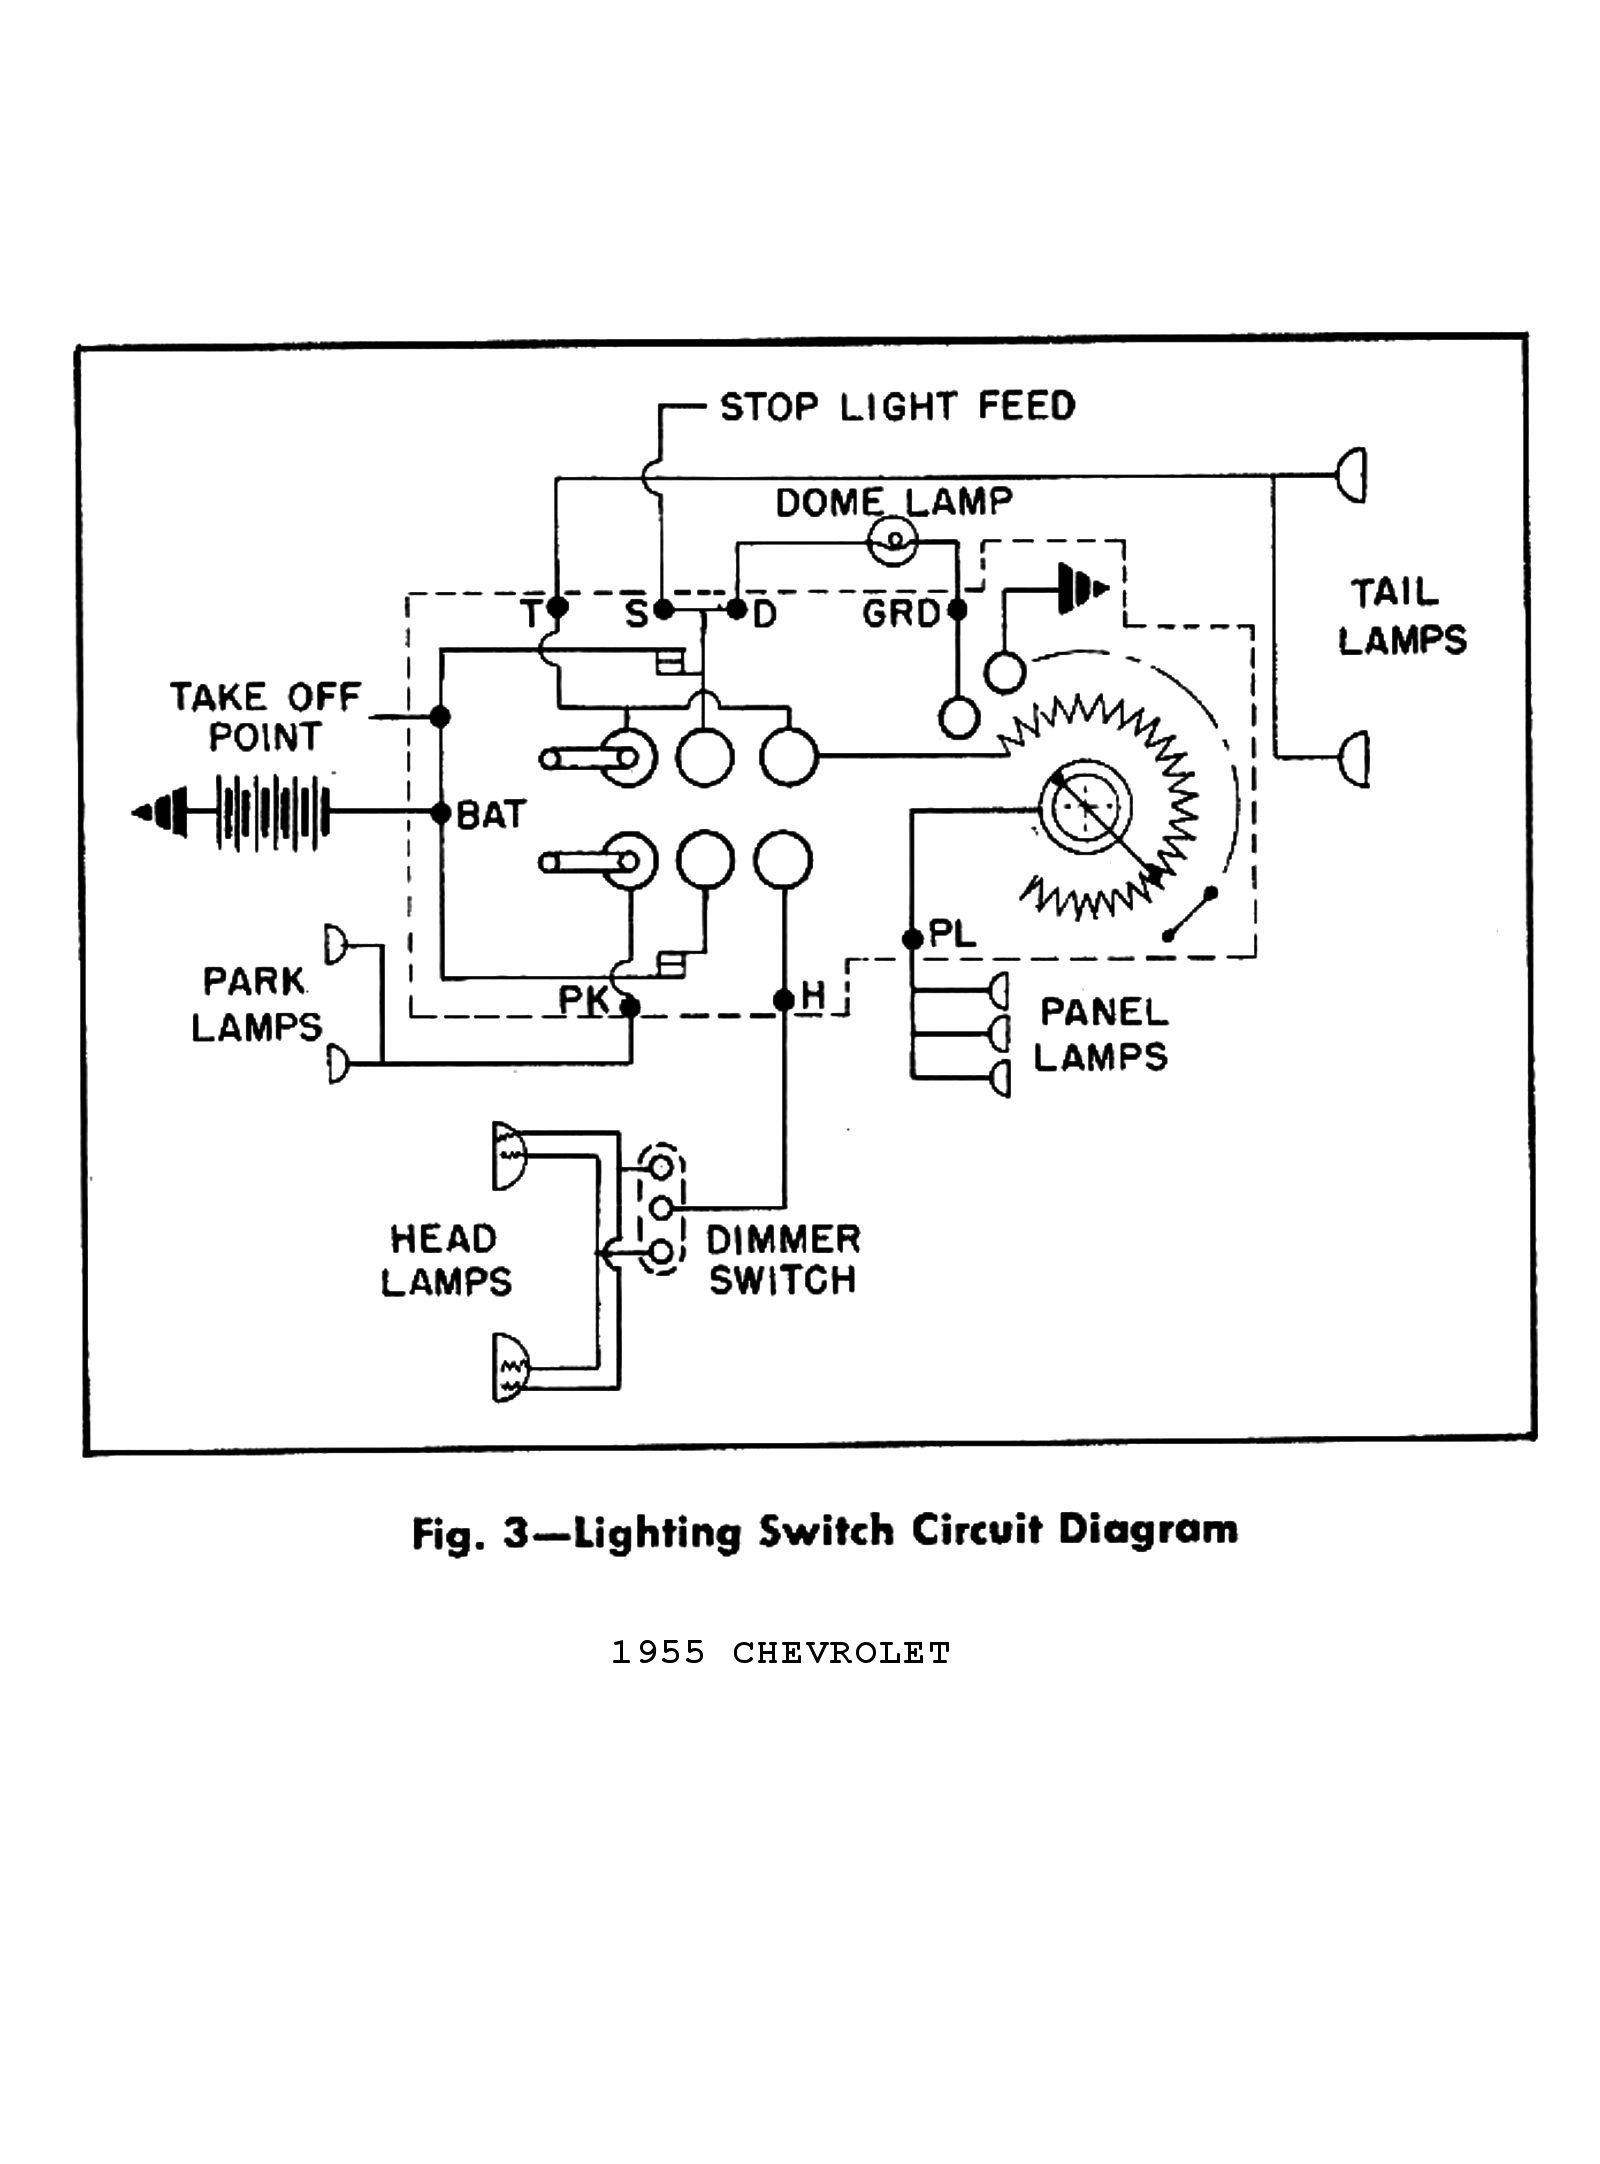 Honda Outboard Tachometer Wiring Diagram from chevy.oldcarmanualproject.com